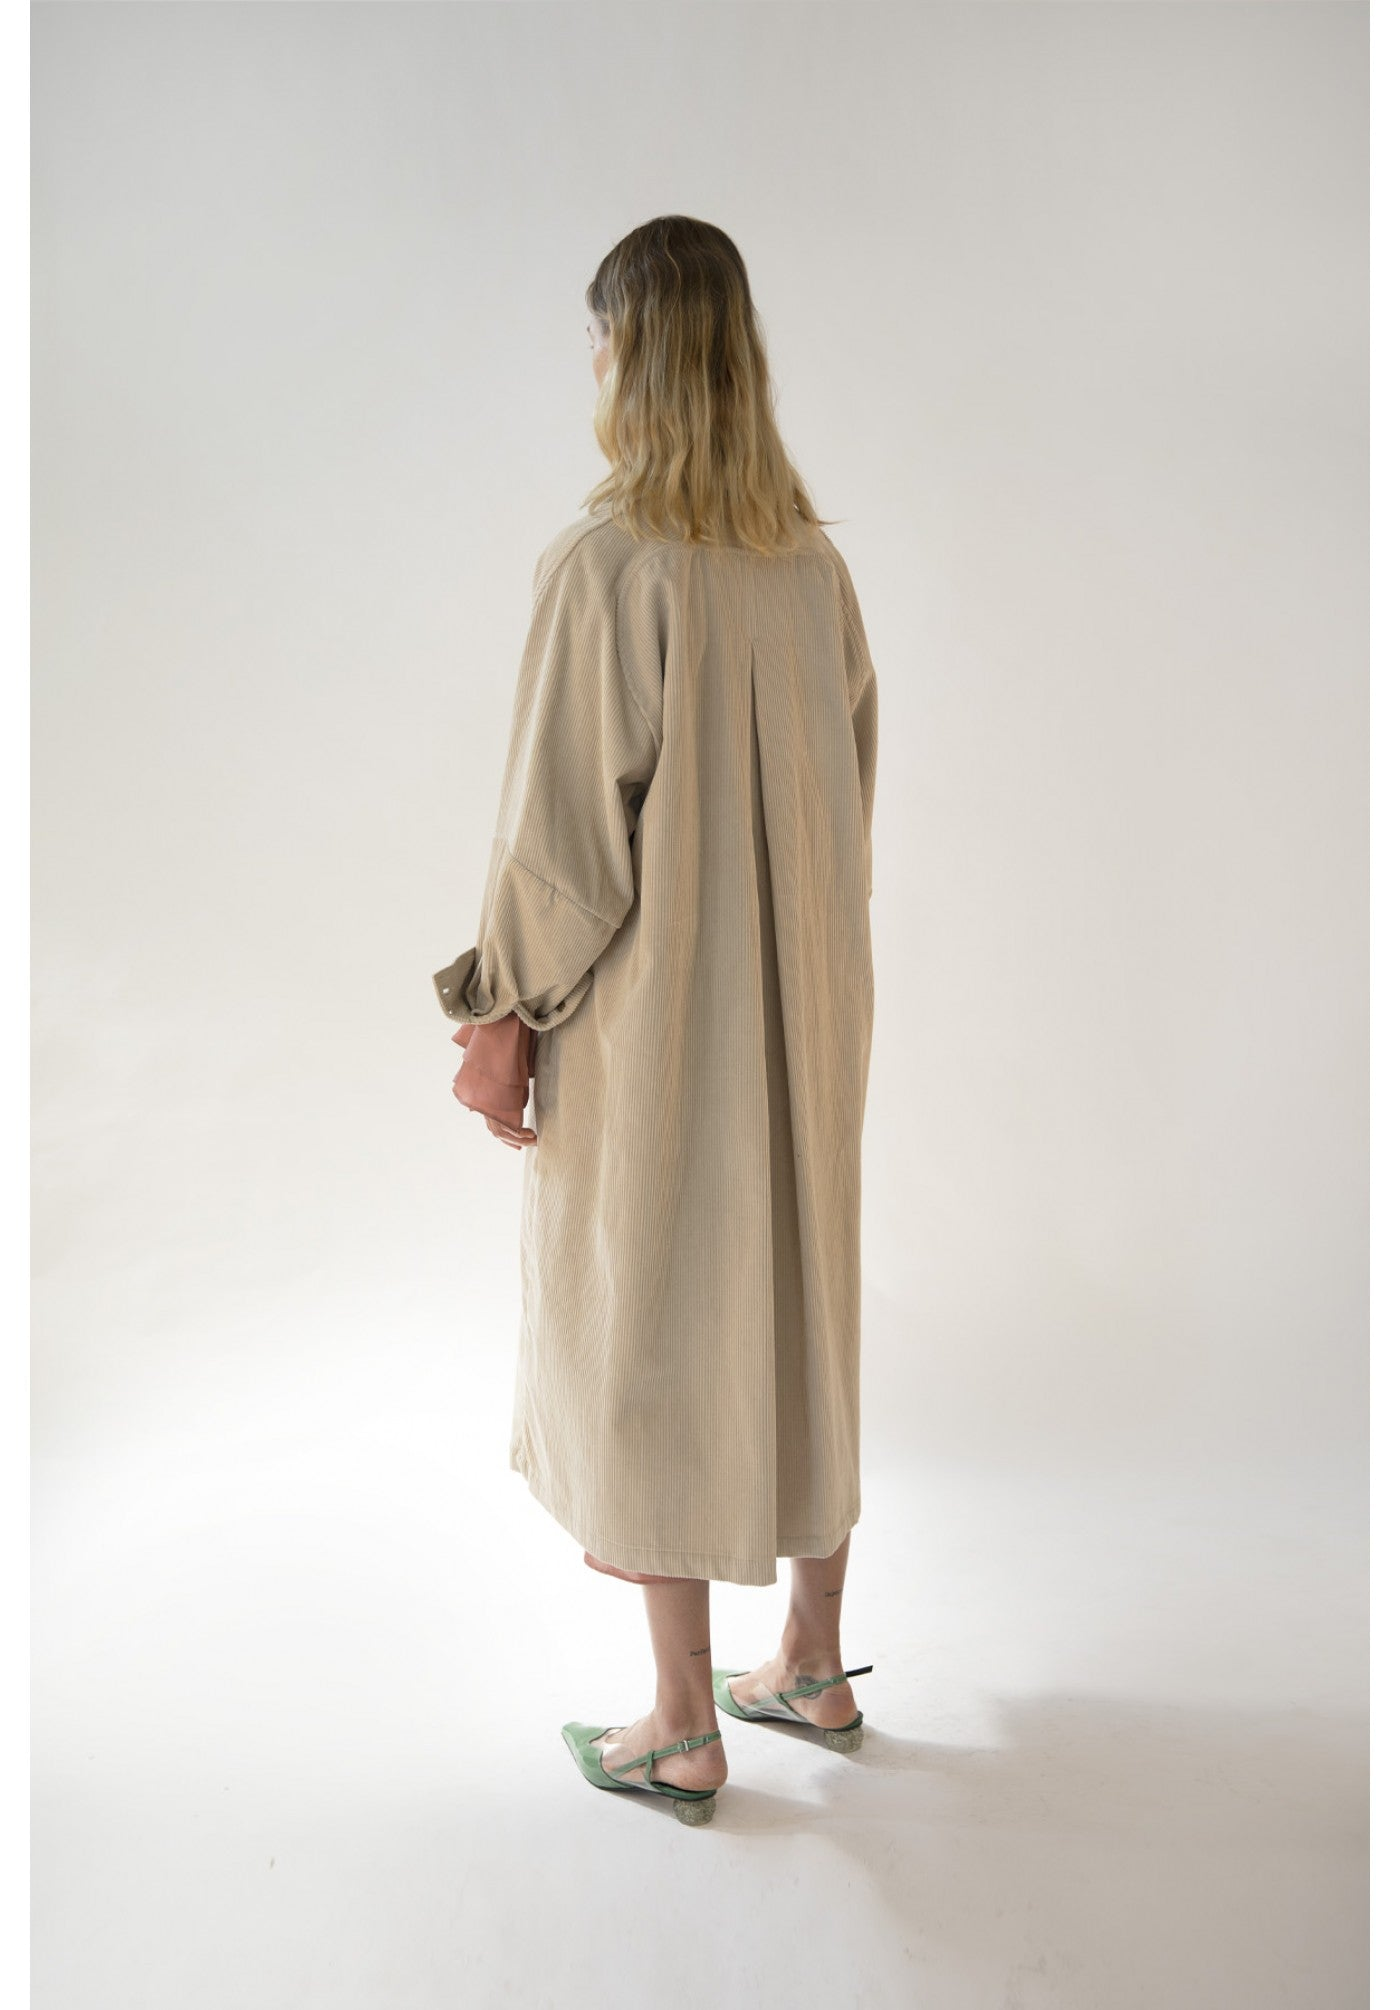 Emin + Paul Oversized Cream Corduroy Coat, Coats, Emin + Paul, Blue Women - Blue Women's Clothing